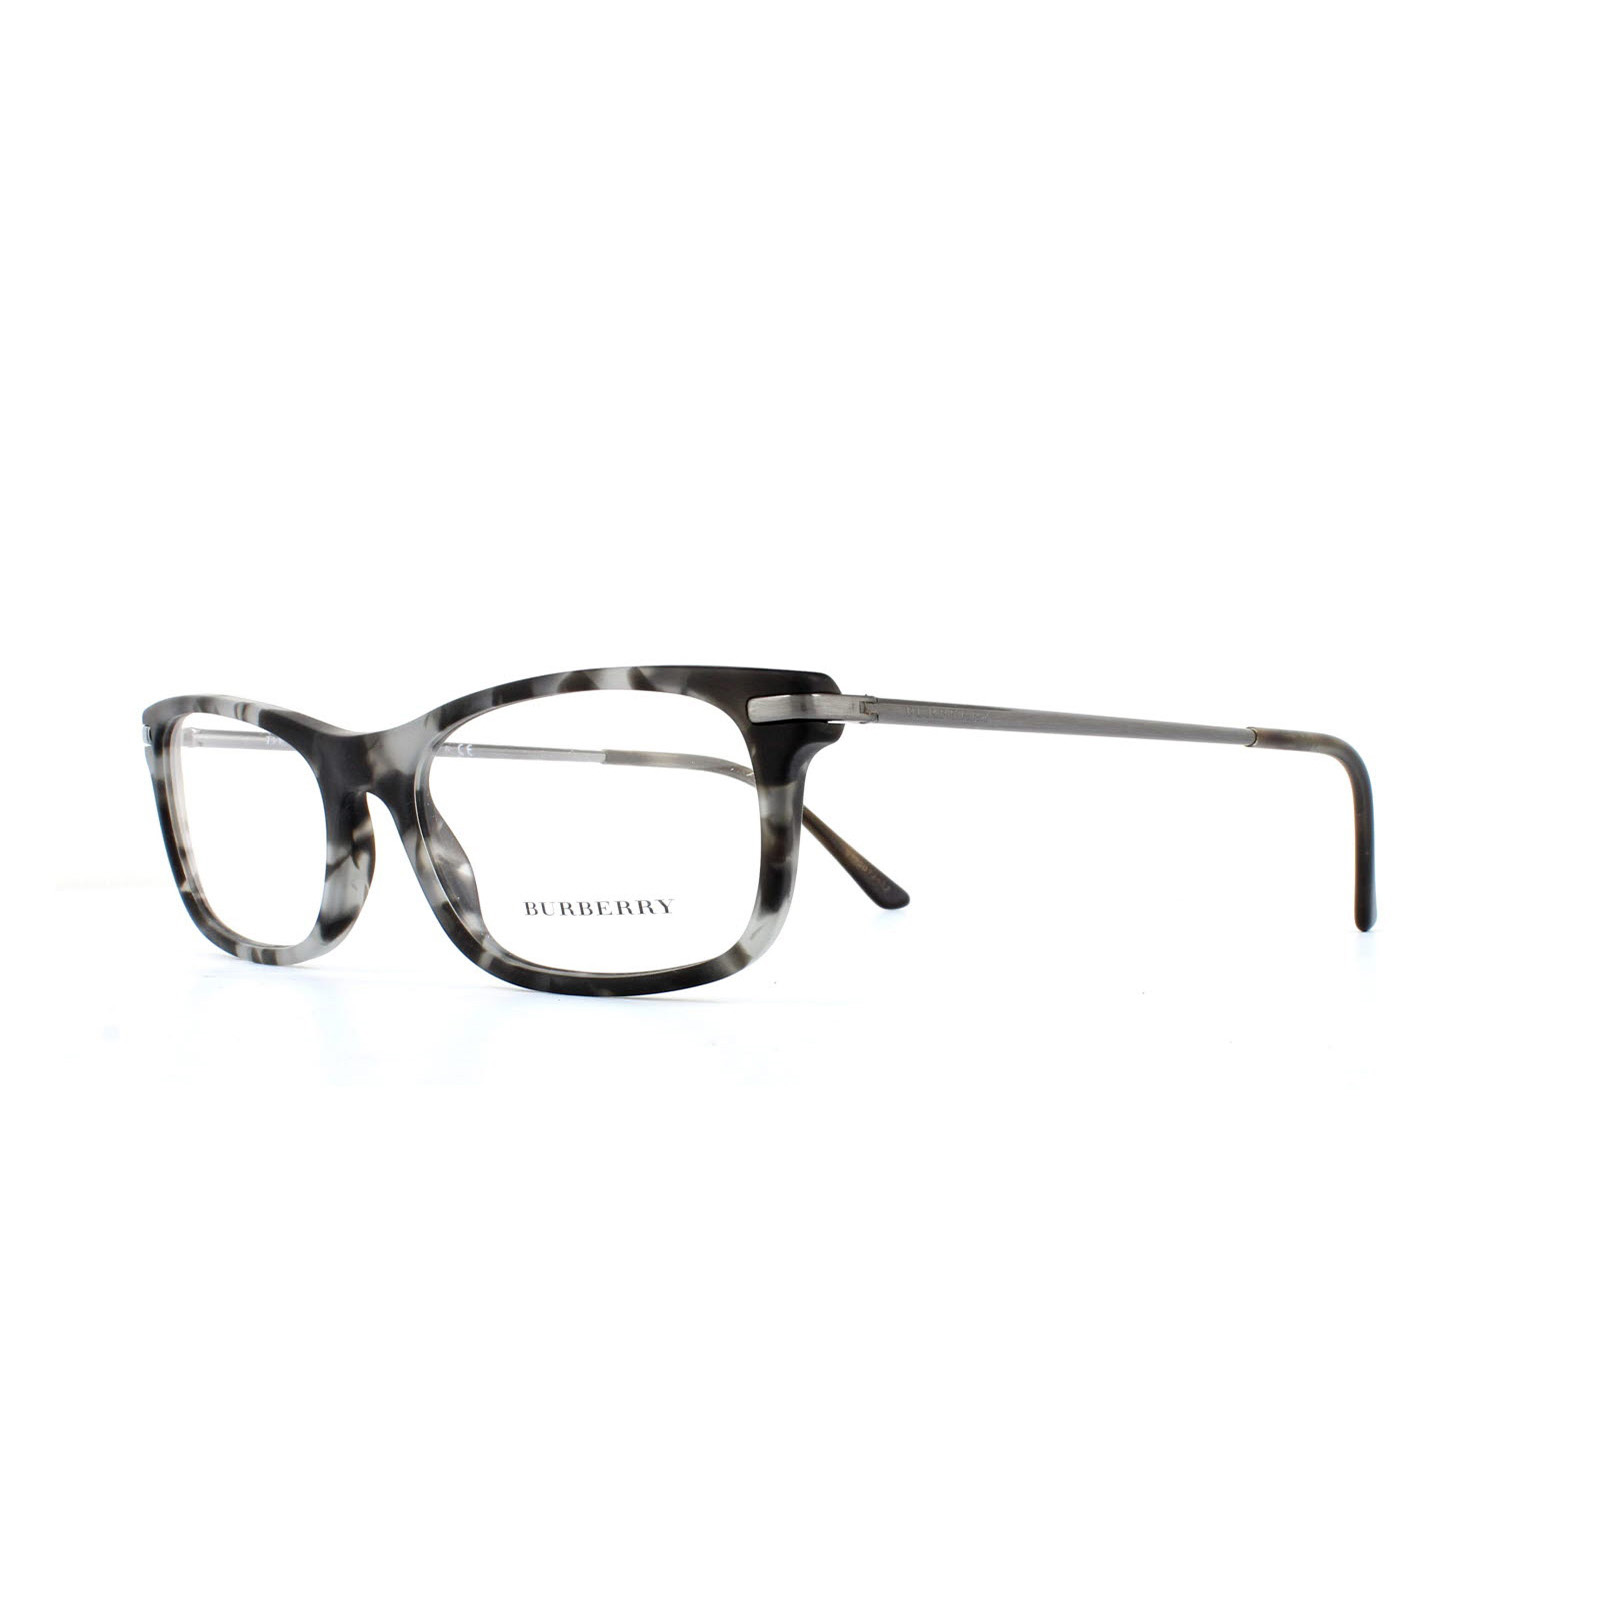 c4e5f842855 Sentinel Burberry Glasses Frames 2195 3534 Matte Grey Havana Womens 53mm